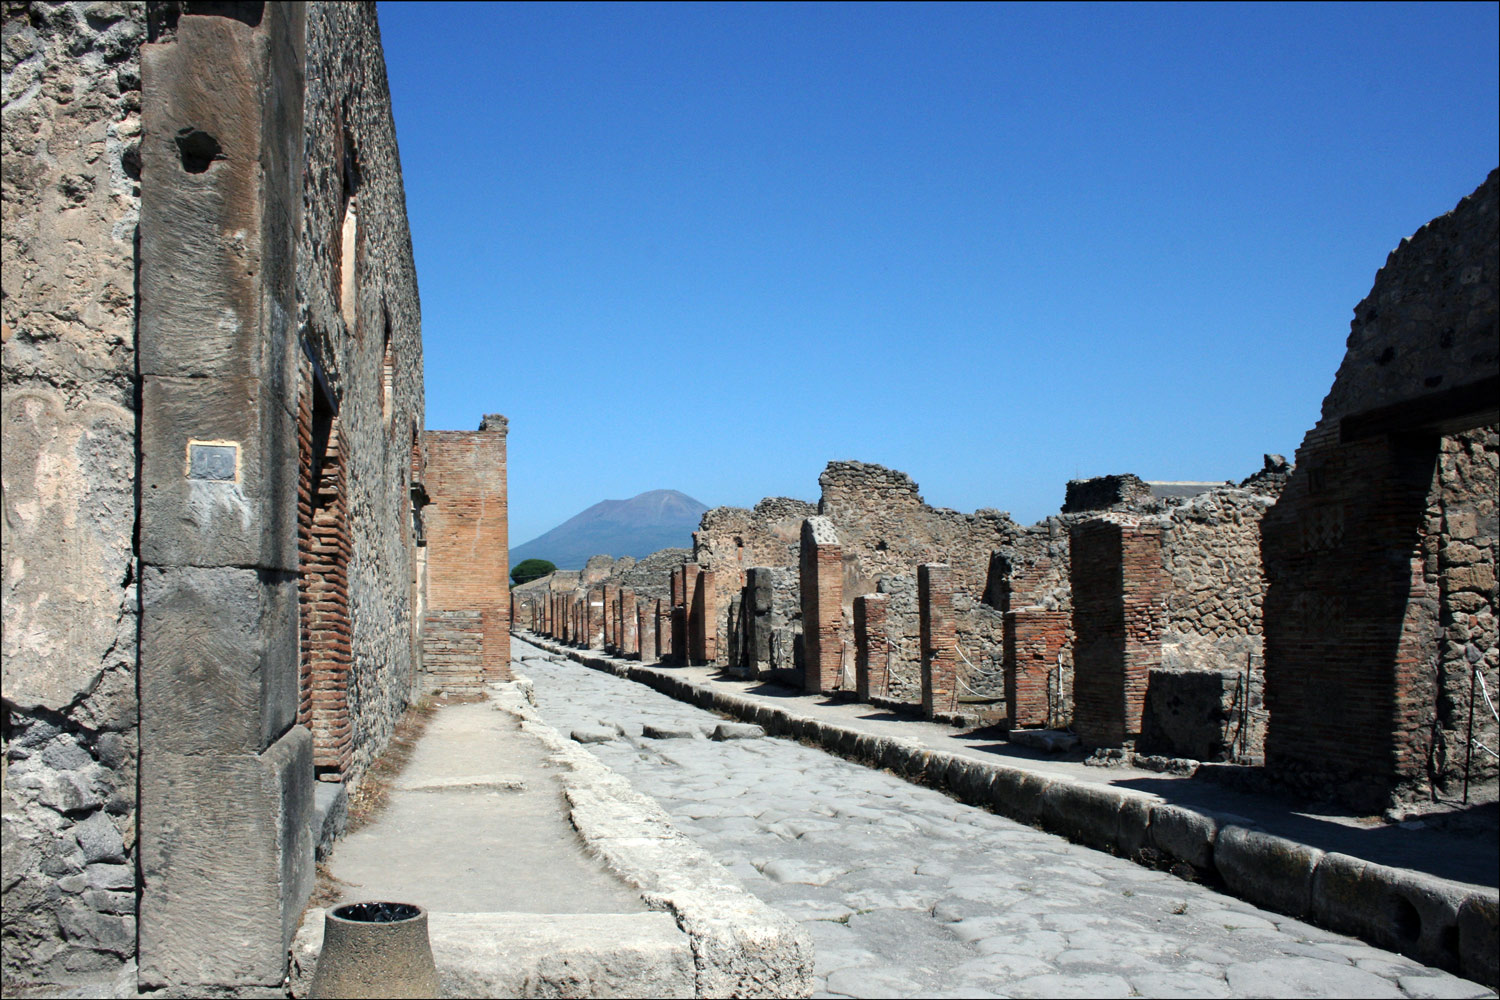 Mount Vesuvius from Holconius' Crossroads